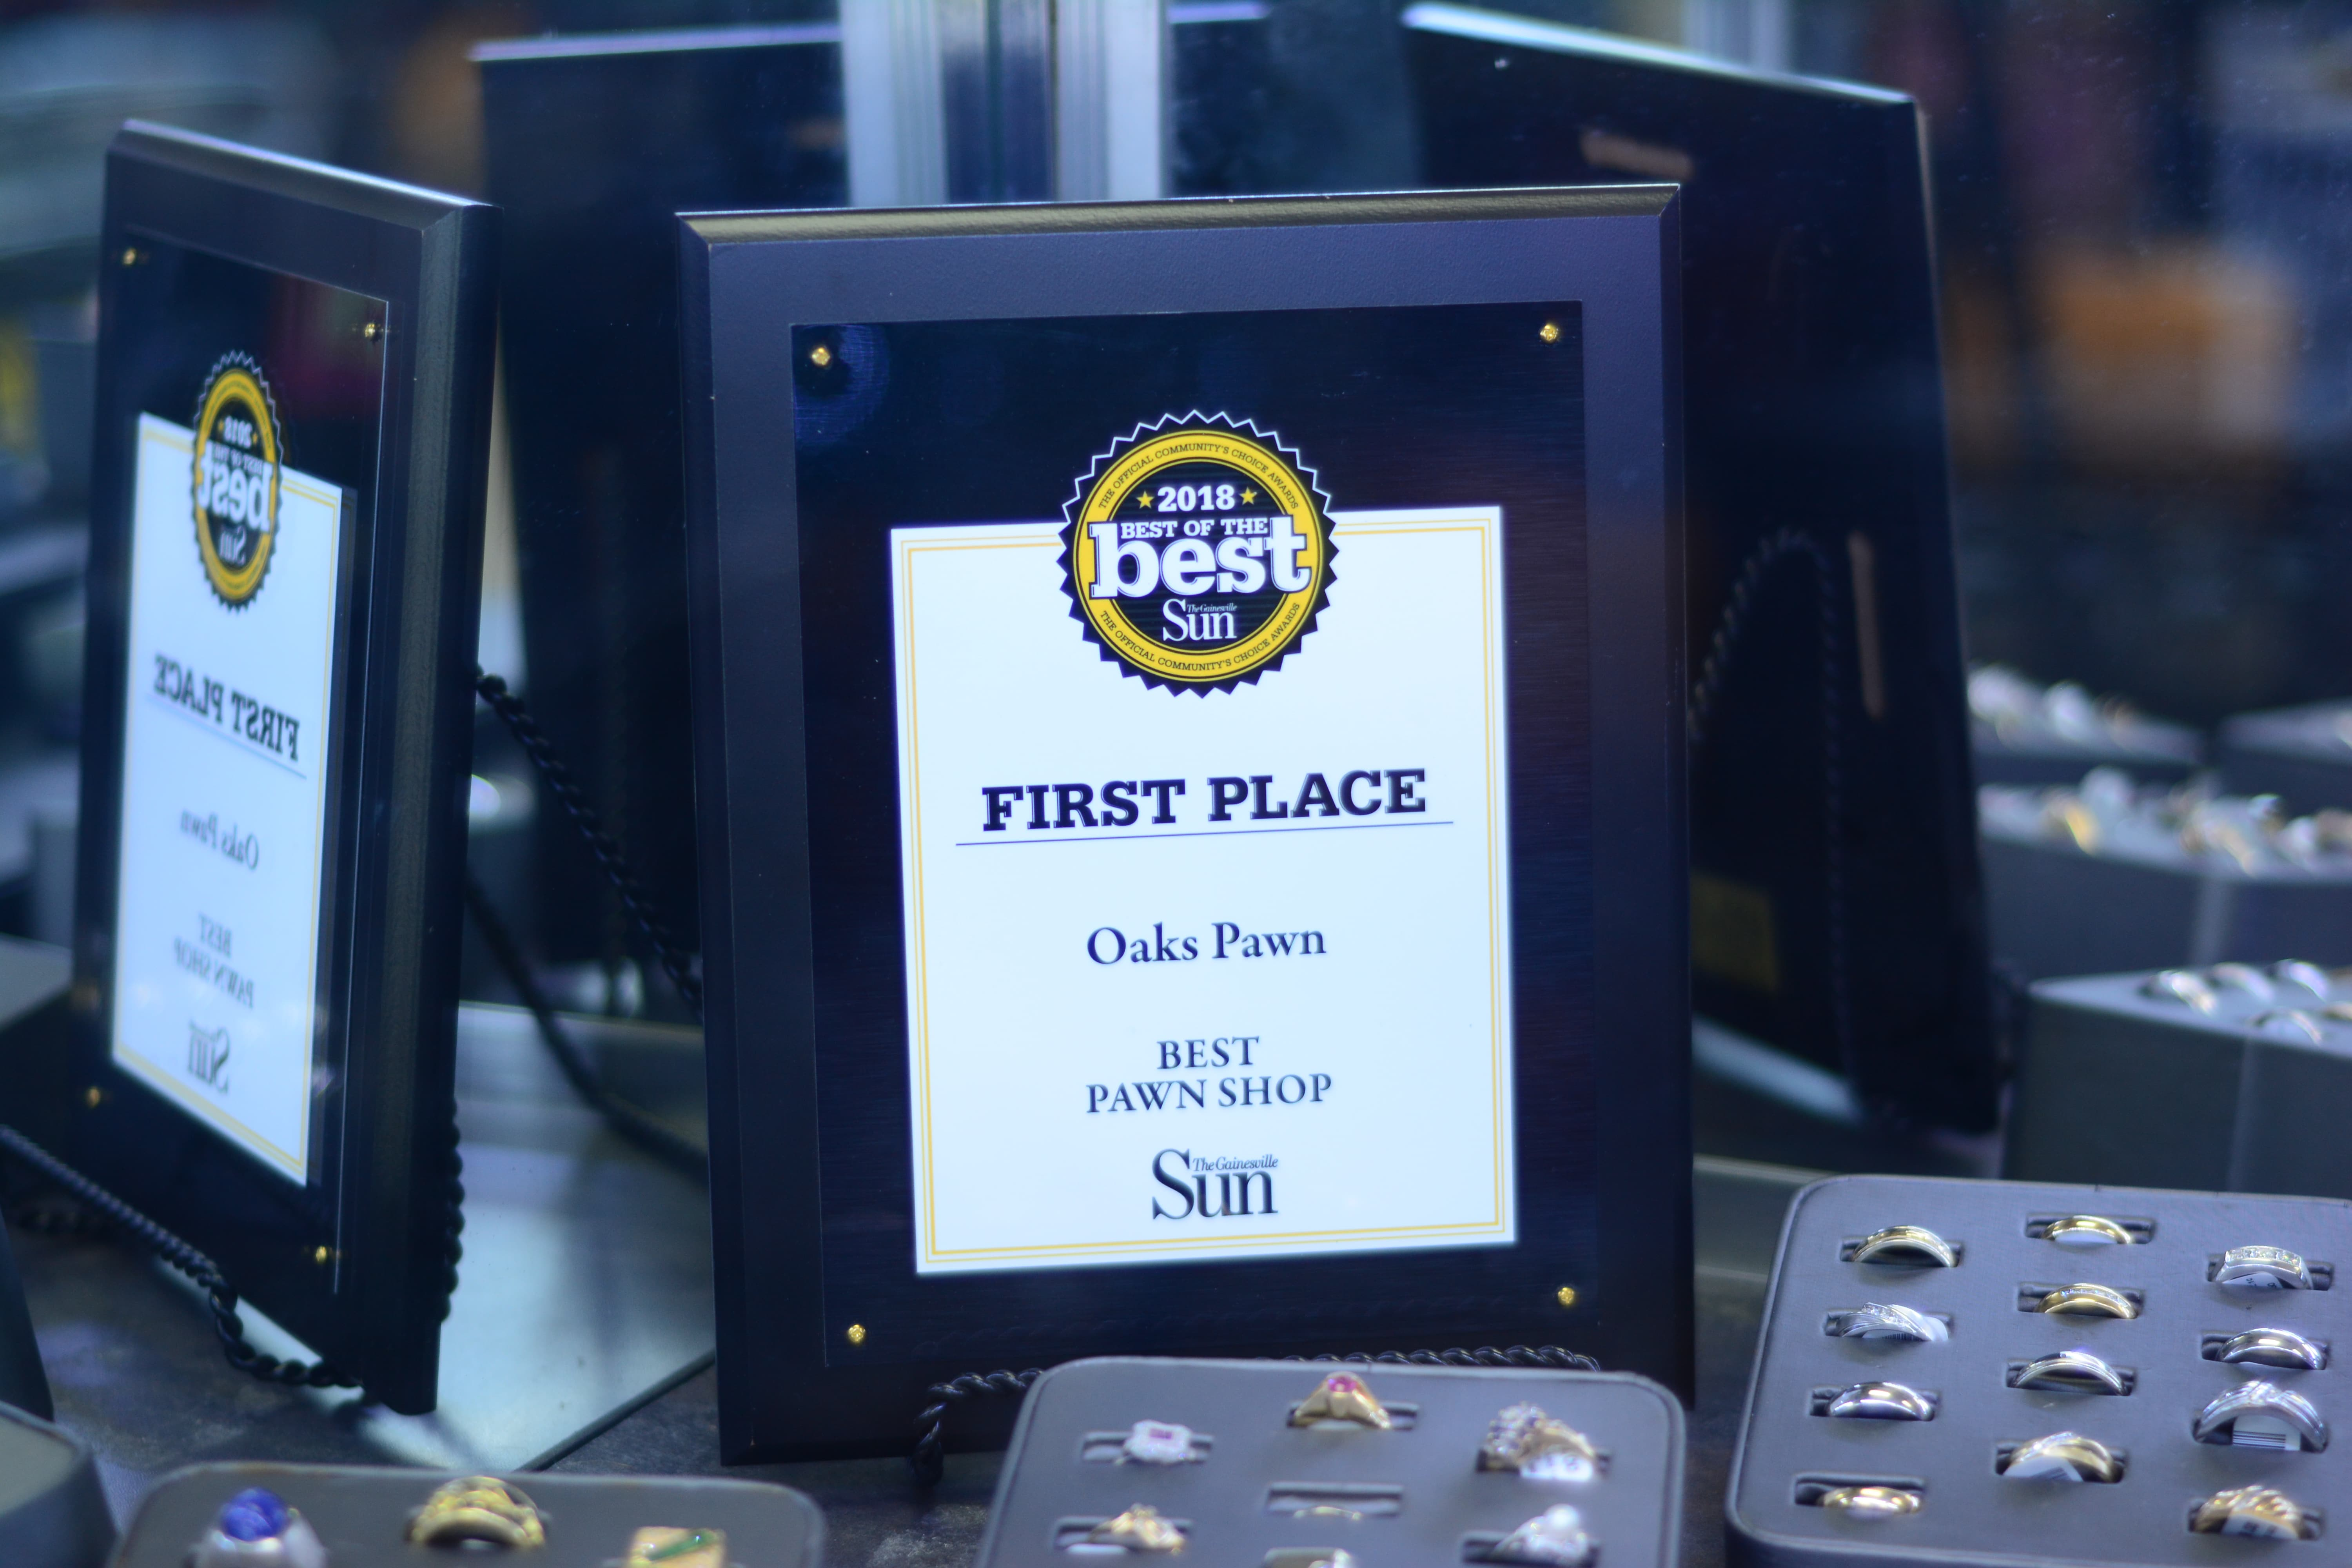 Oaks Pawn First Place Best Pawn Shop Gainesville Sun